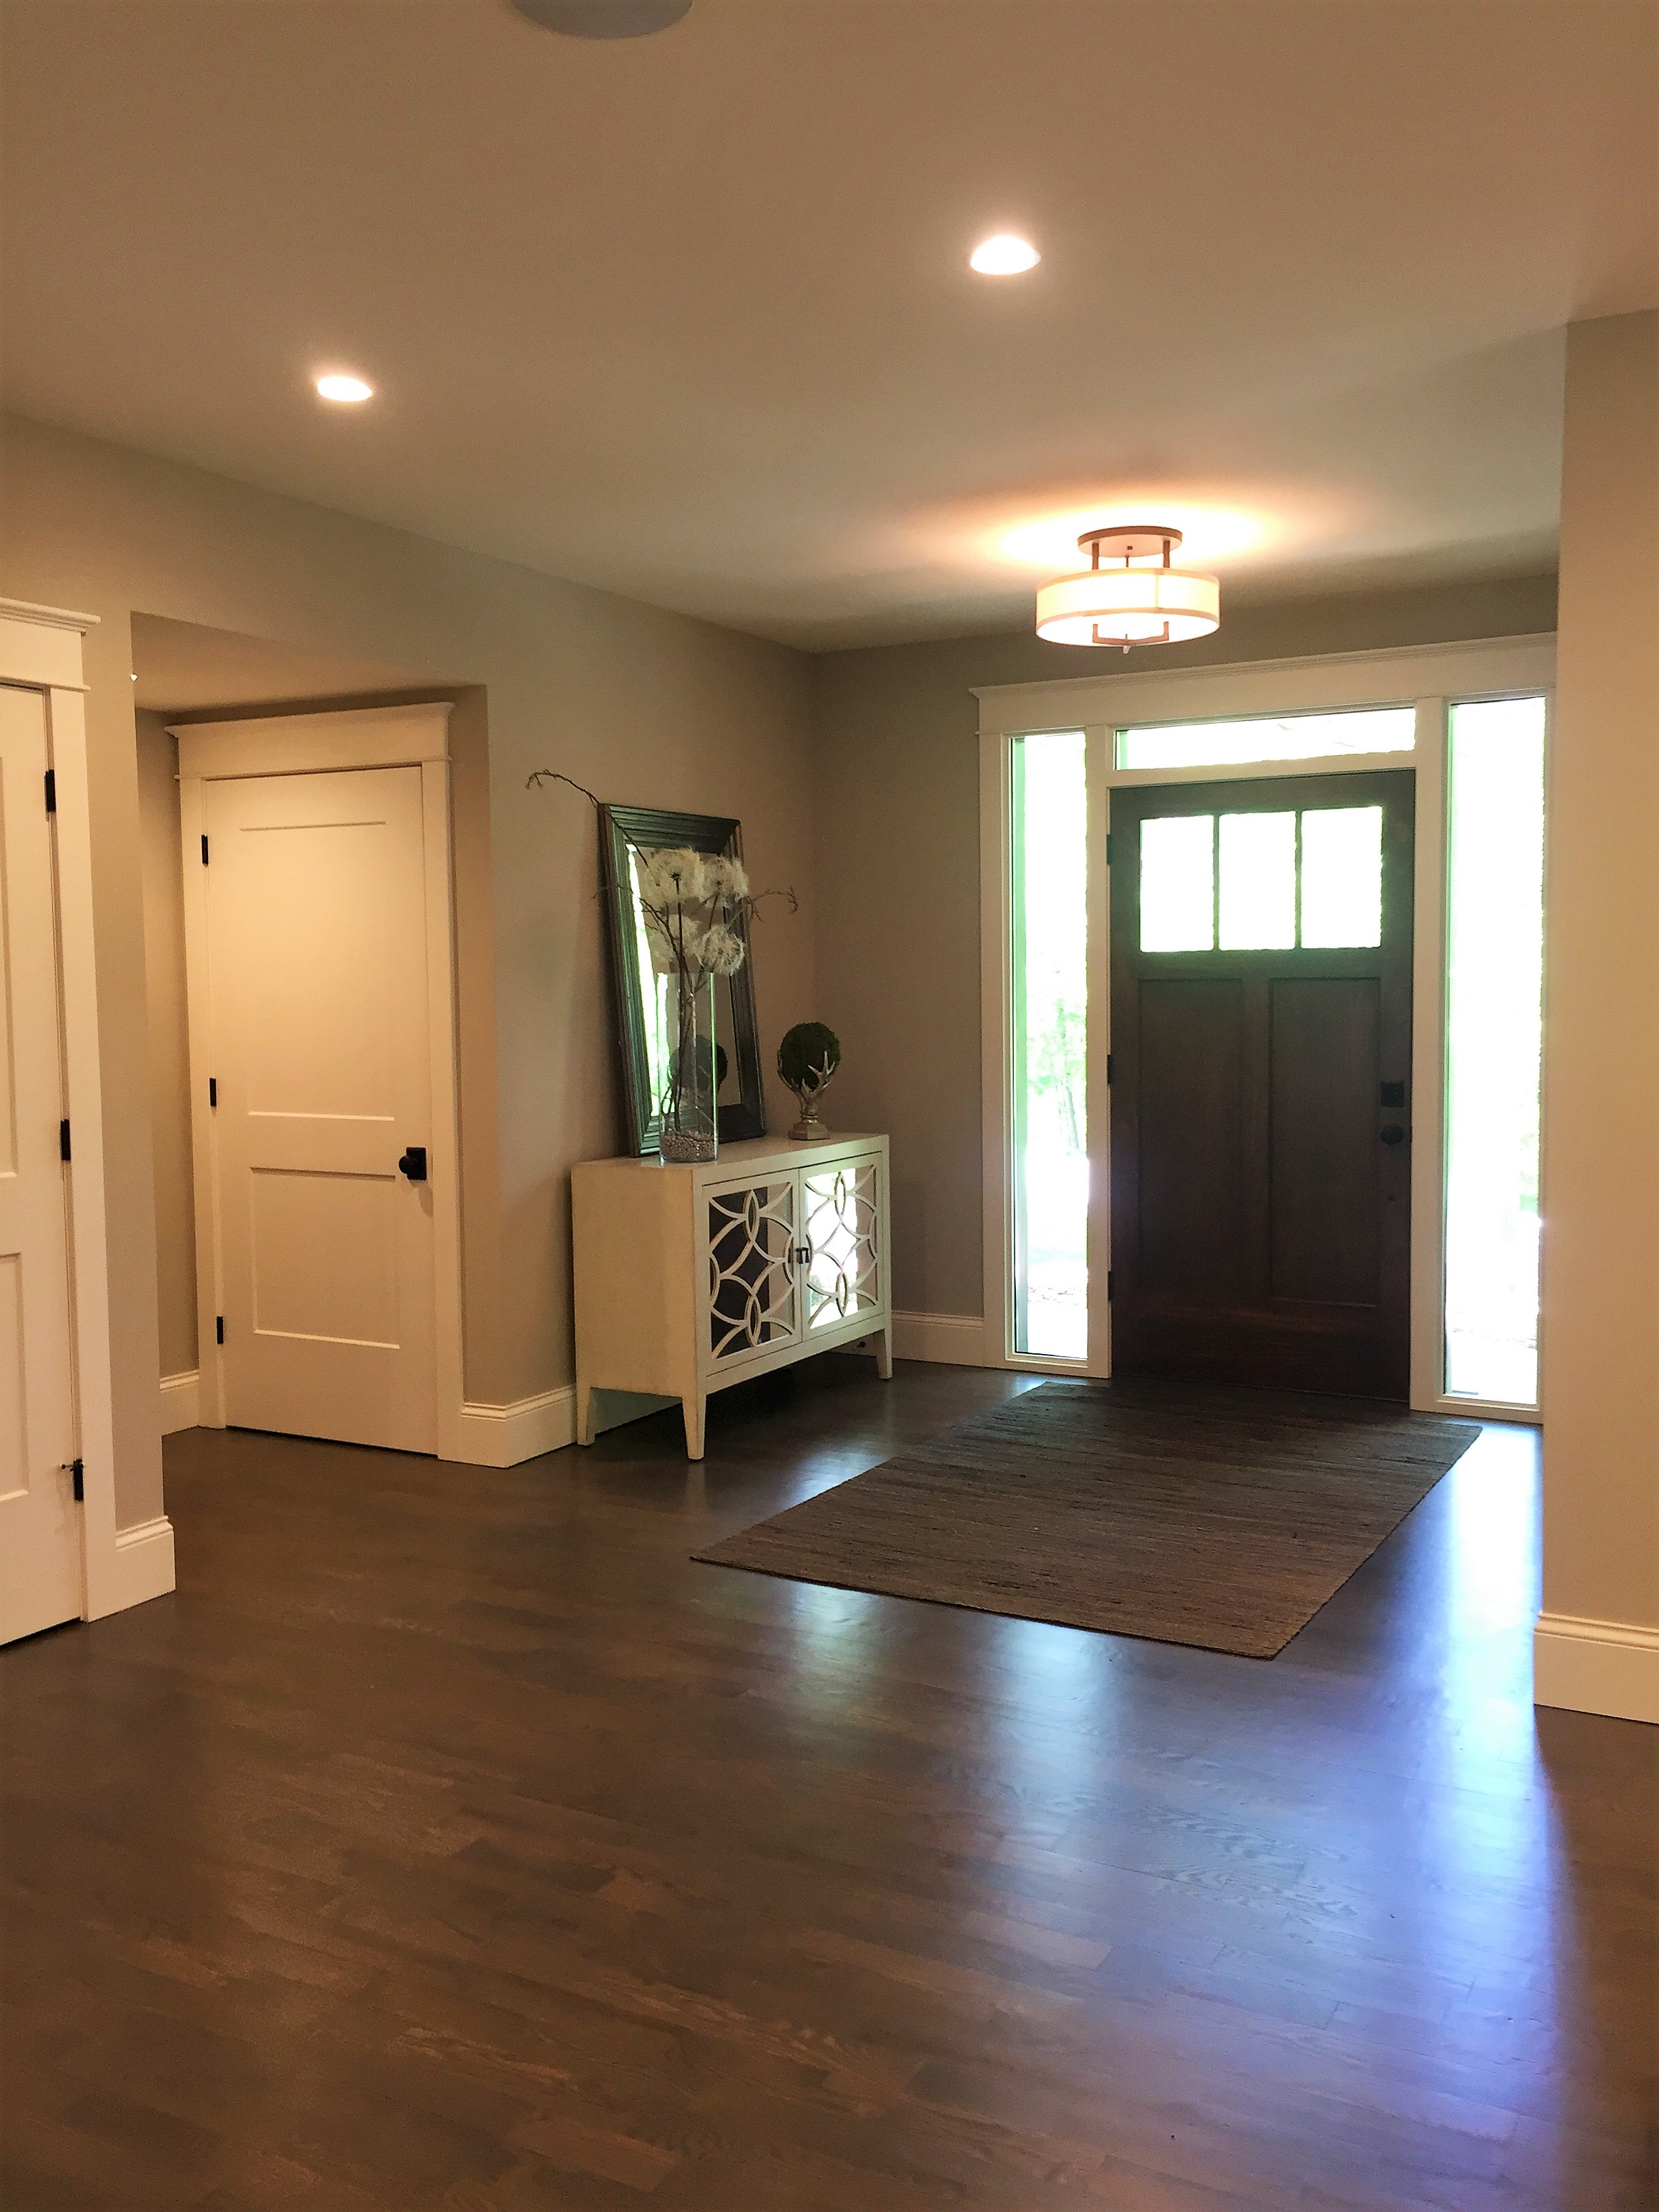 Picture of entry way